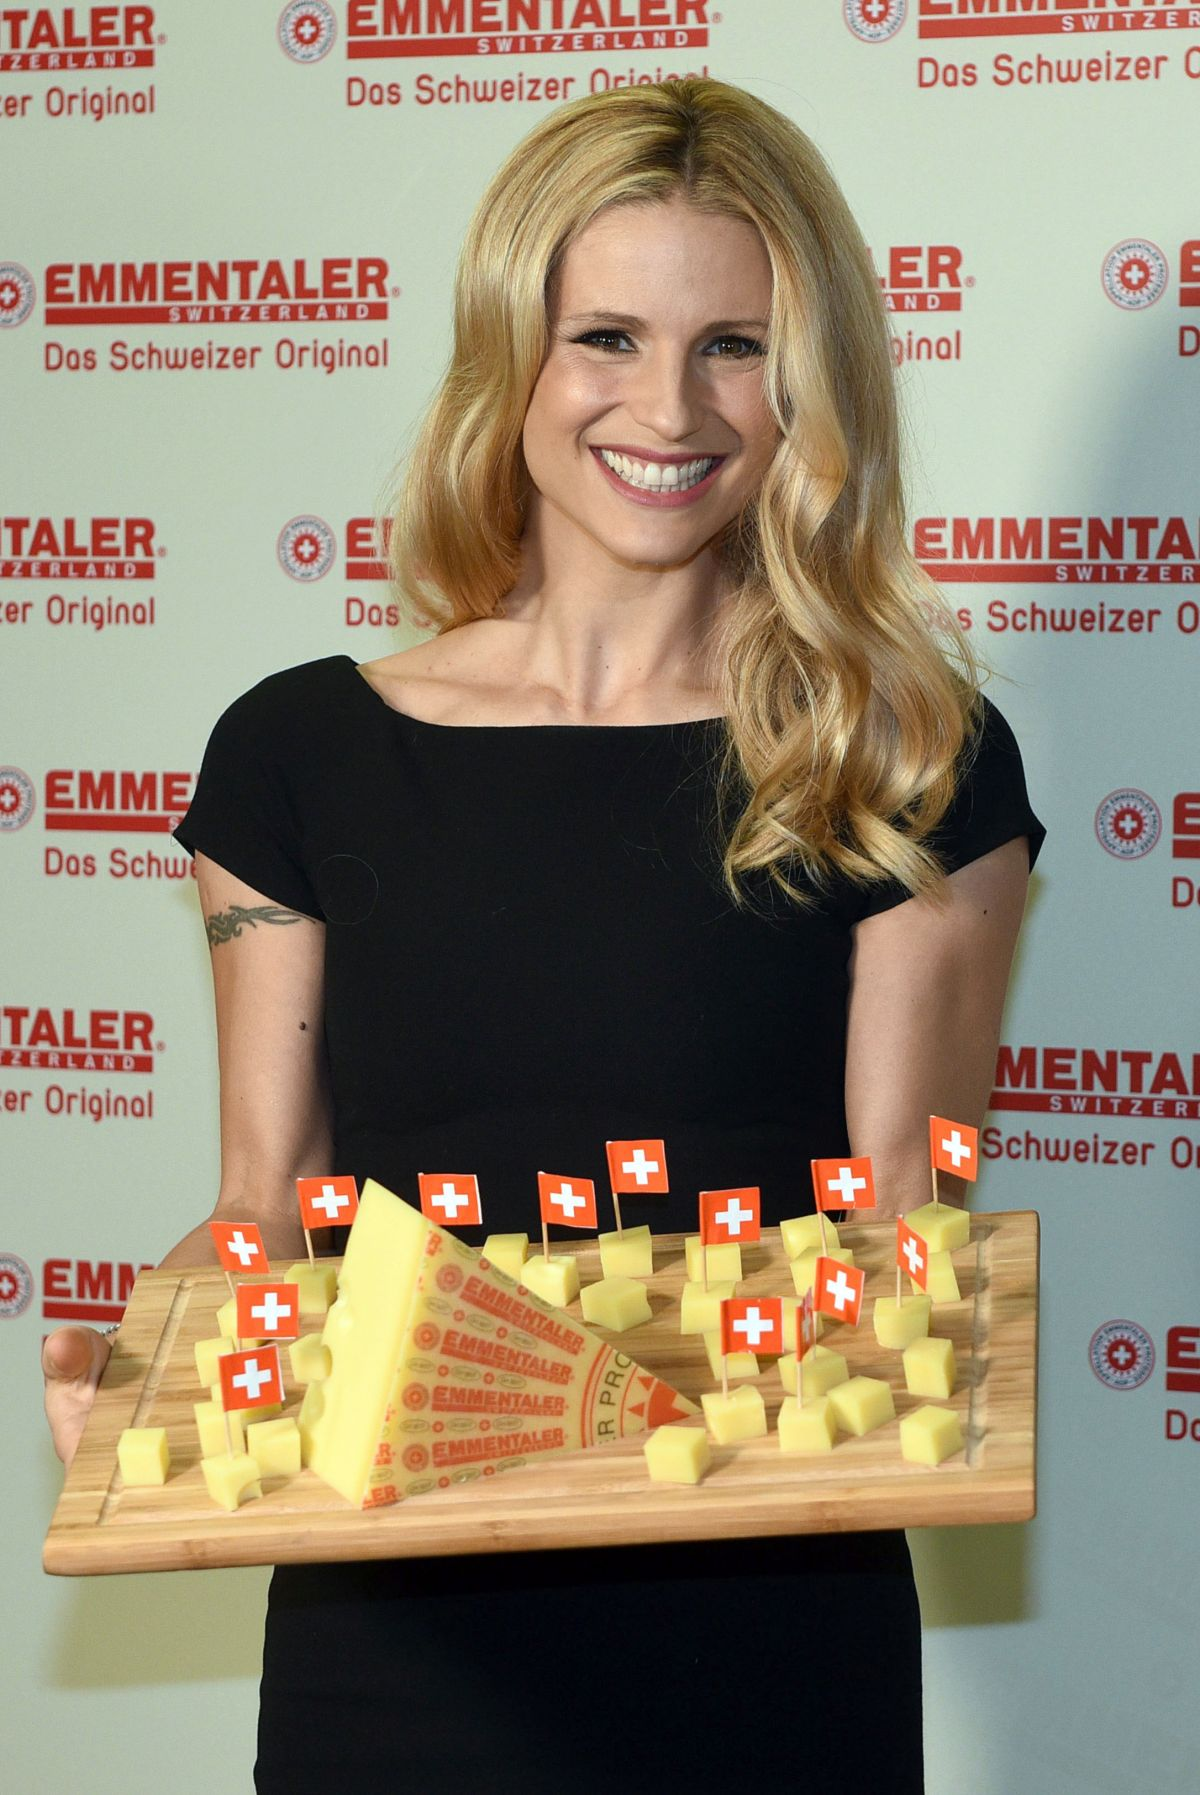 MICHELLE HUNZIKER at Schweizer Emmentaler Aop Ambassador Photocall in Cologne 12/09/2015